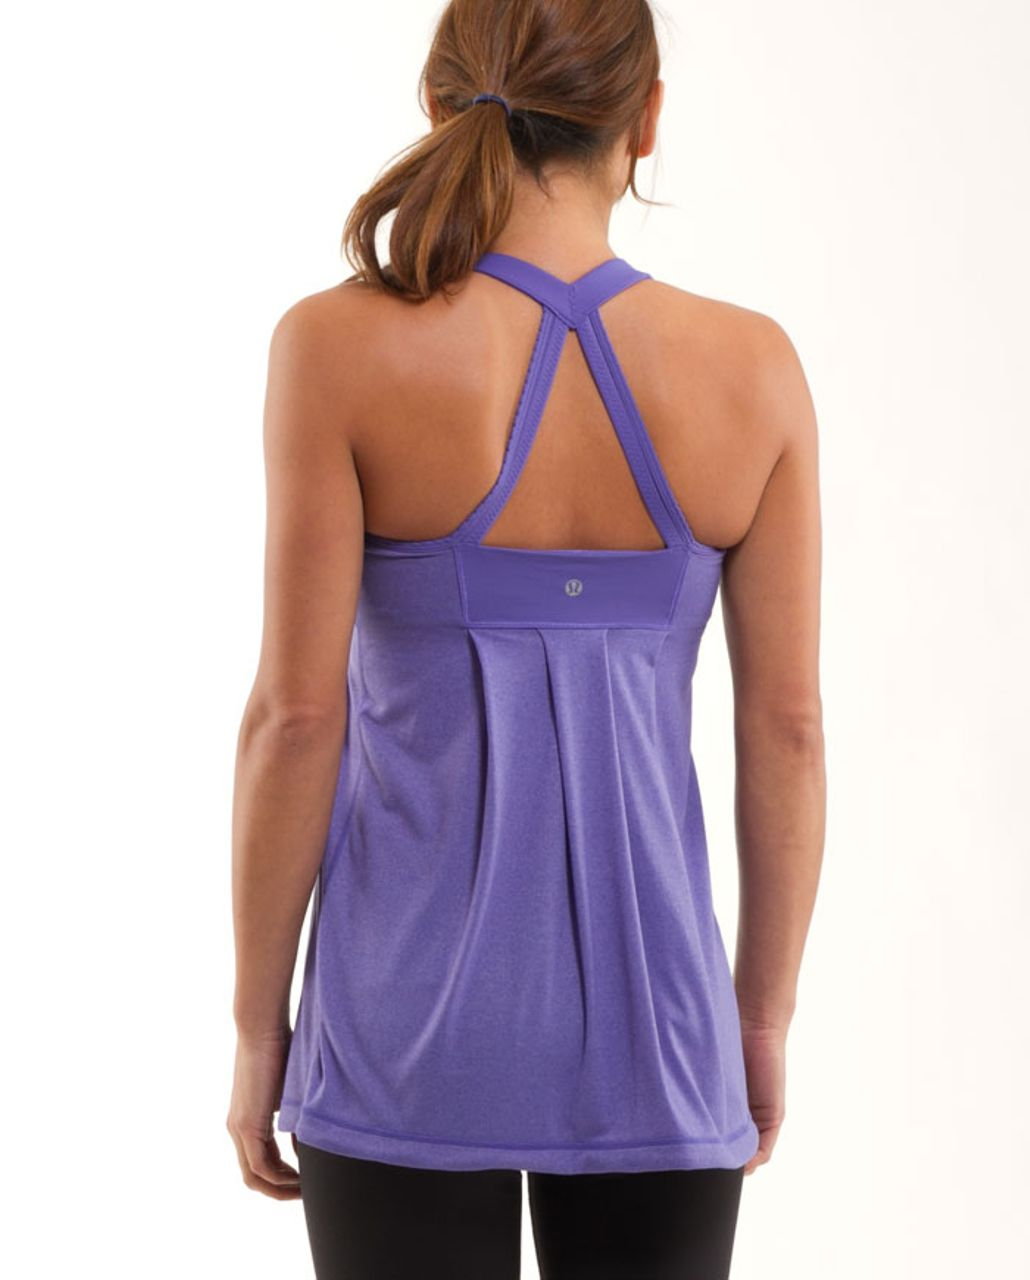 Lululemon Power Technique Tank - Persian Purple